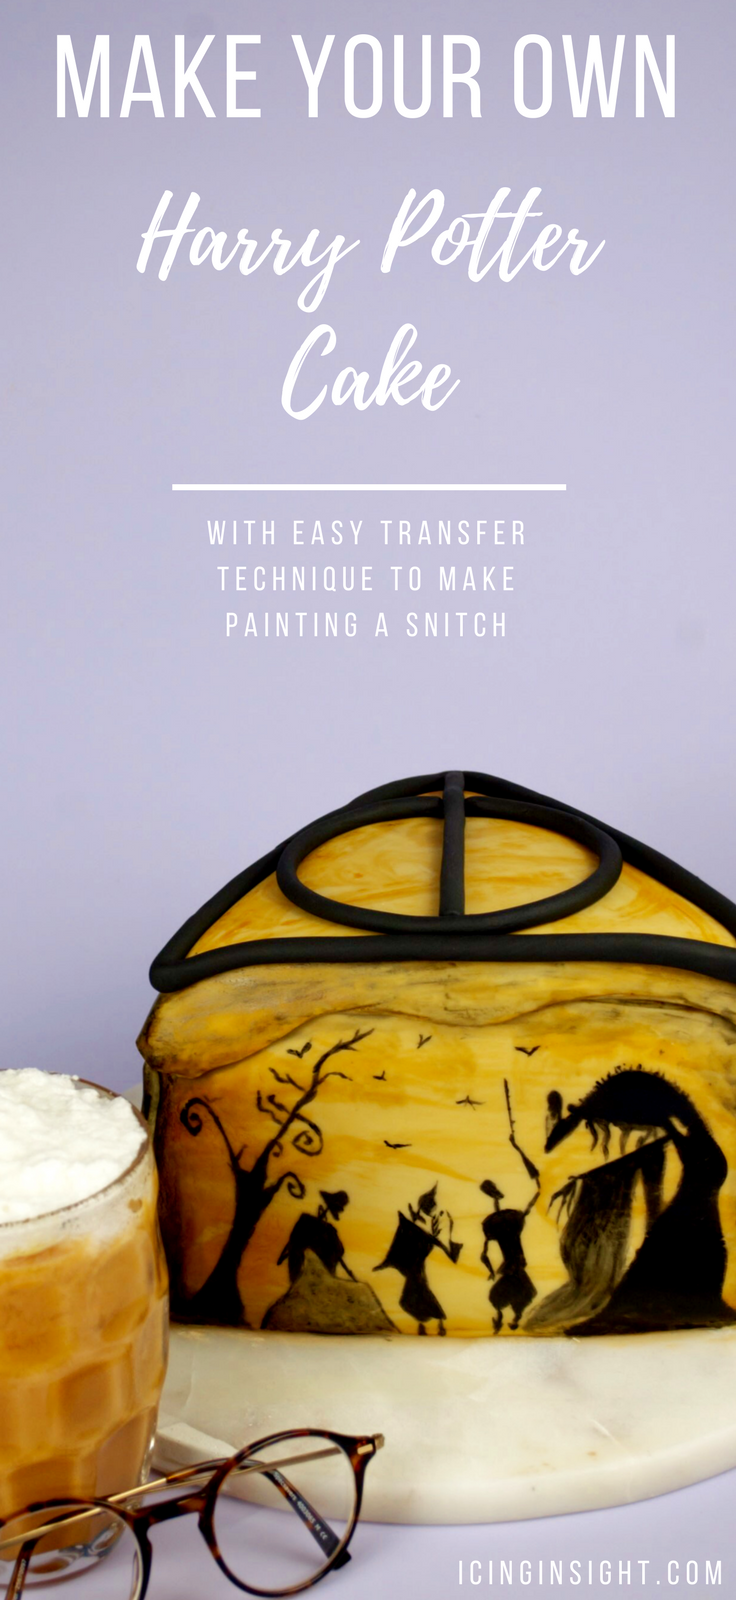 How To Make An Easy Harry Potter Cake in the deathly hallows theme. There's a super easy transfer trick with a pencil and some parchment paper to get everyone painting, even if you can't draw